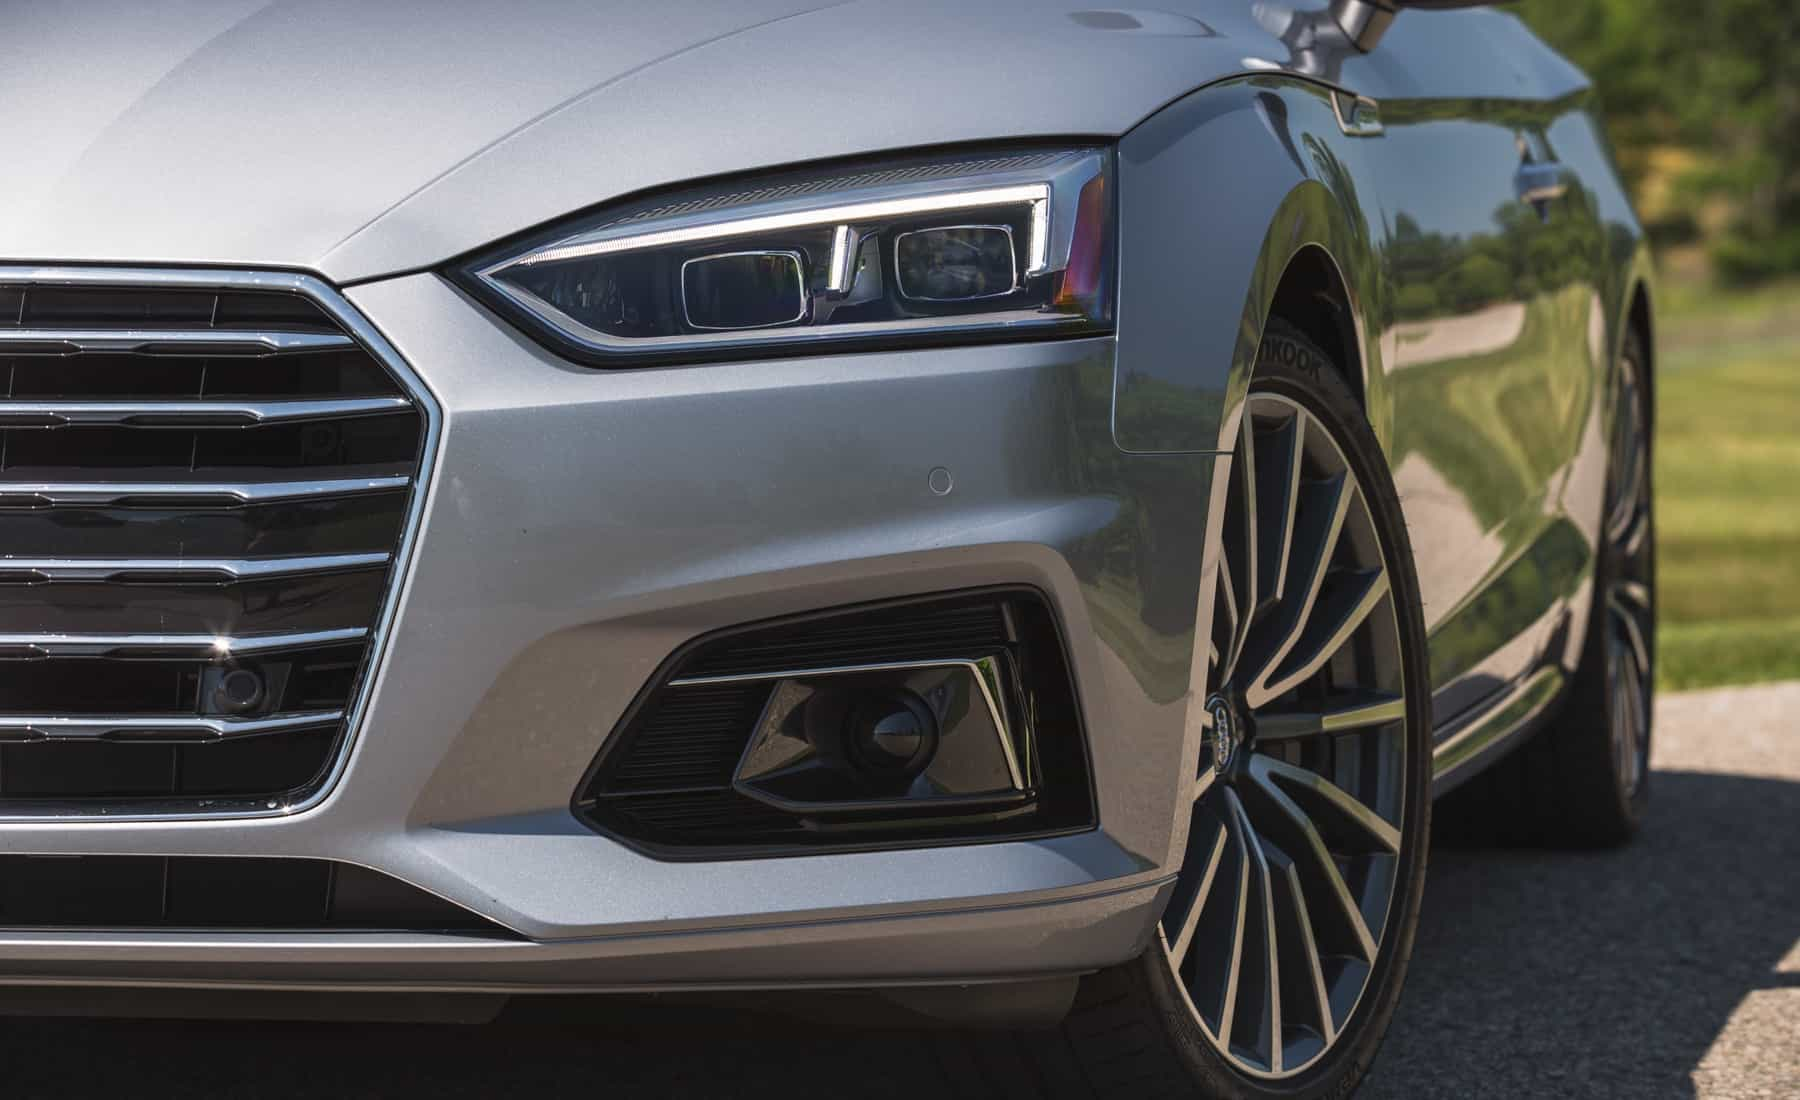 2018 Audi A5 Cabriolet Exterior View Headlight (Photo 12 of 45)